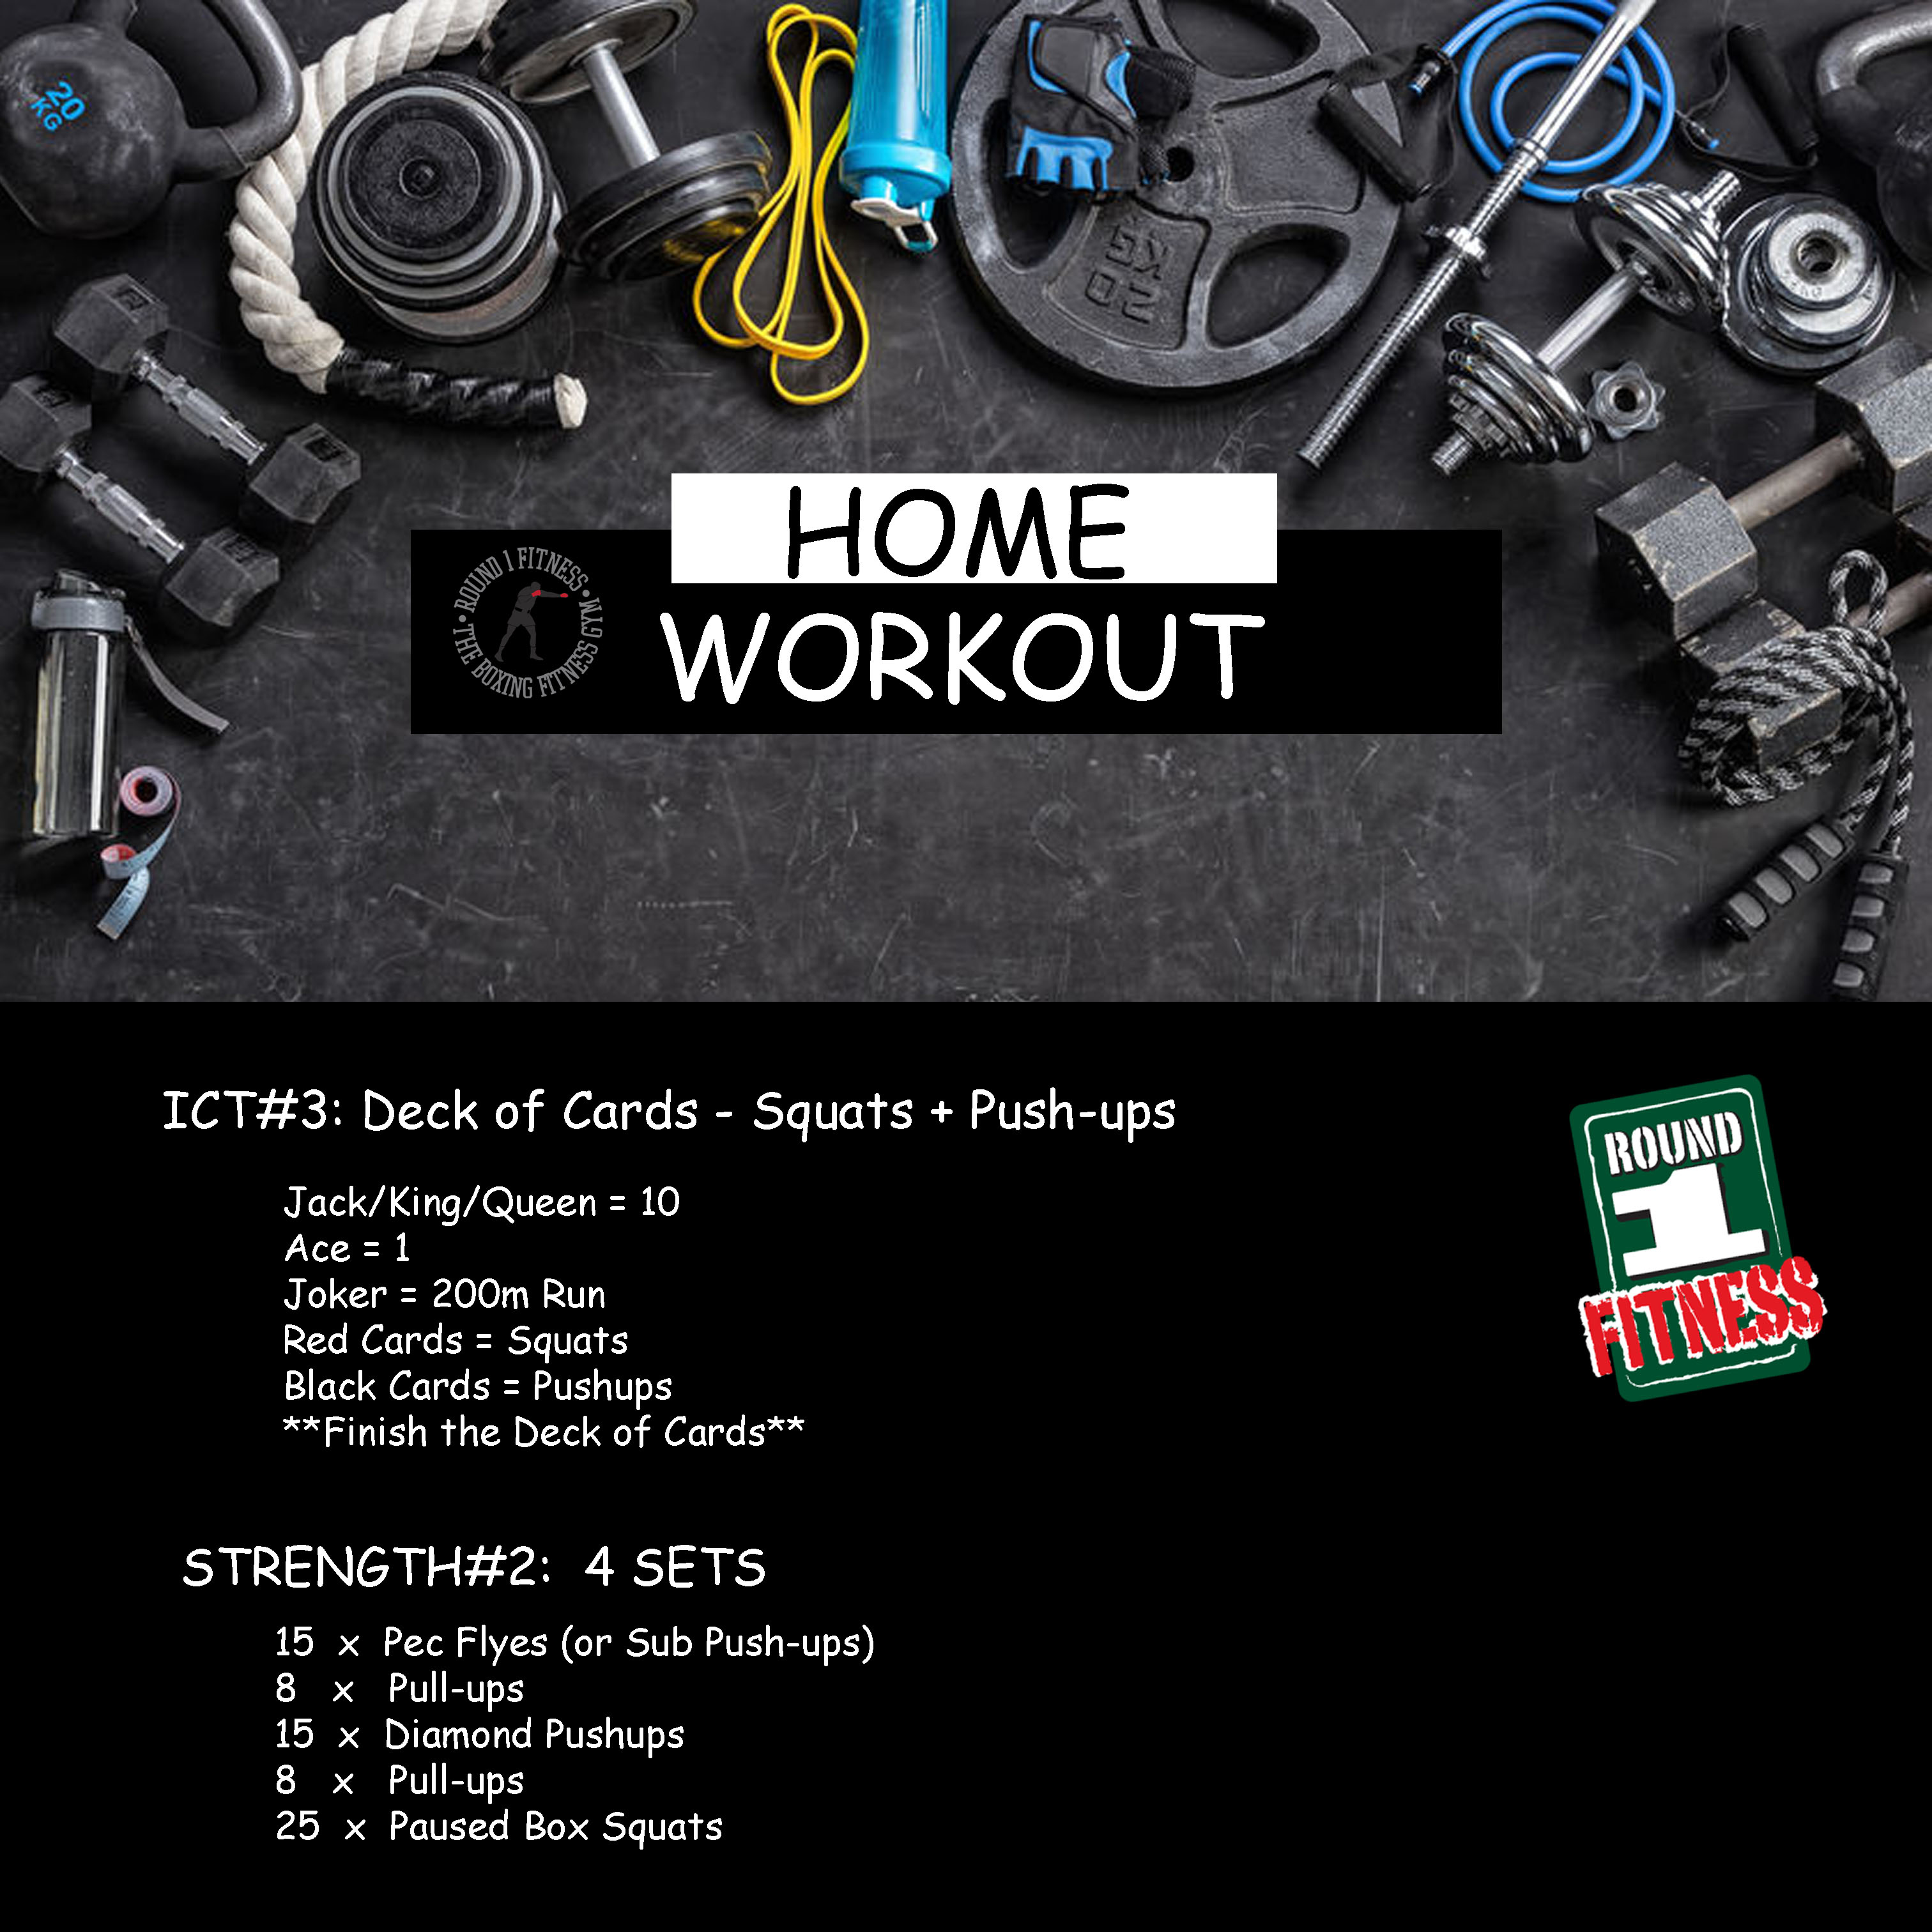 Home Workout:  Friday, May 8th